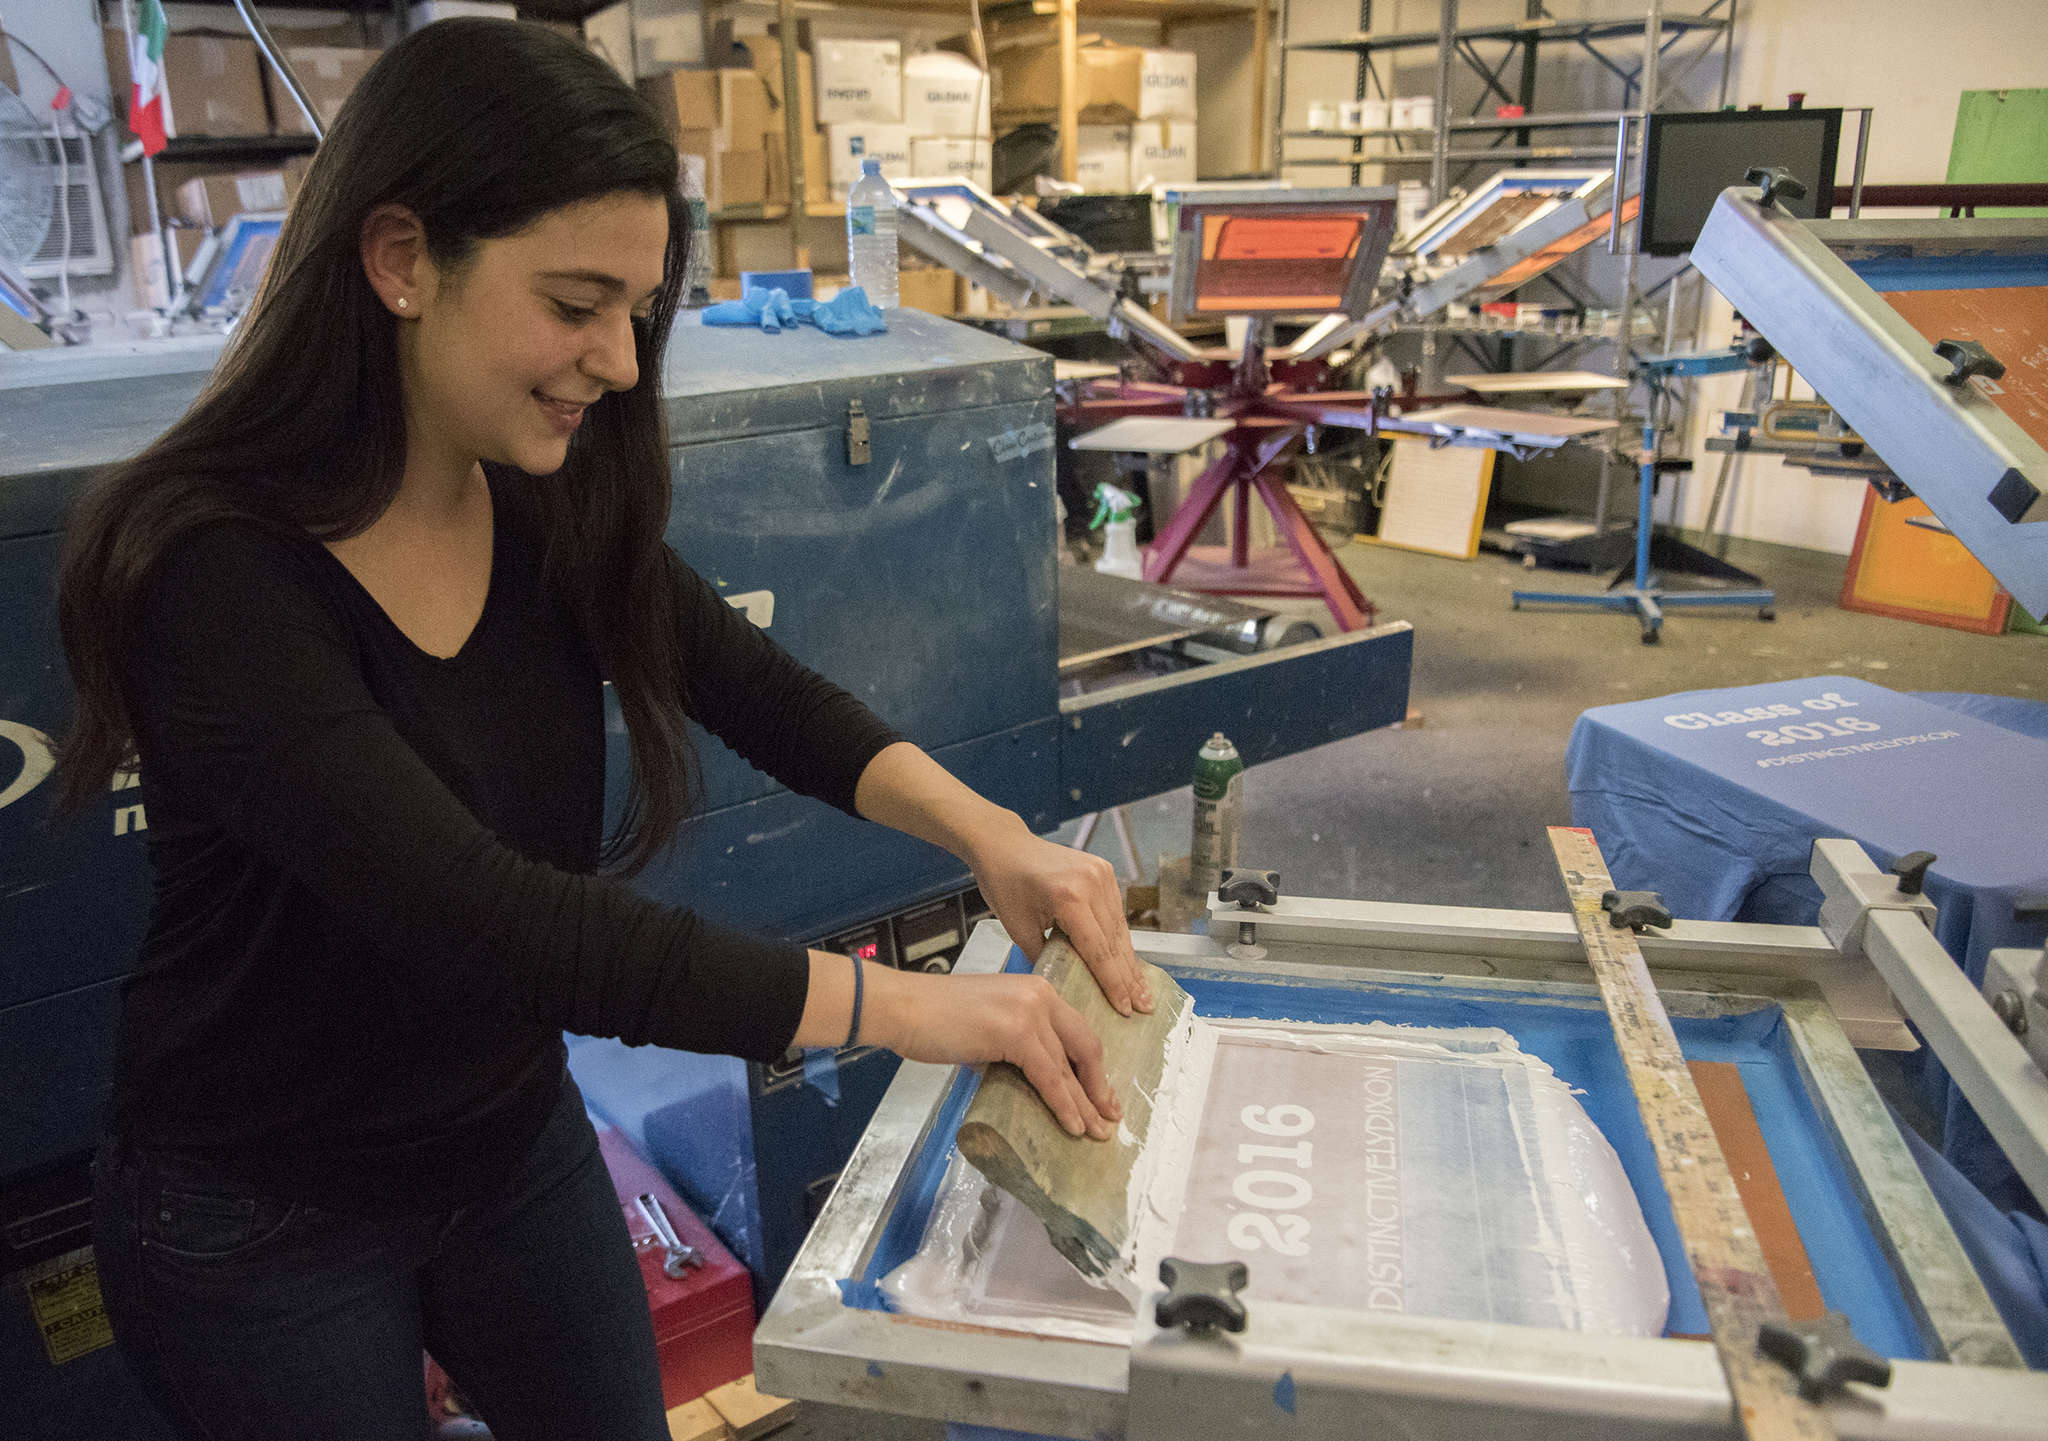 Melanie Weinsten, a Penn campus manager for Fresh Prints, uses a screen printer at Tee Vision Printing.